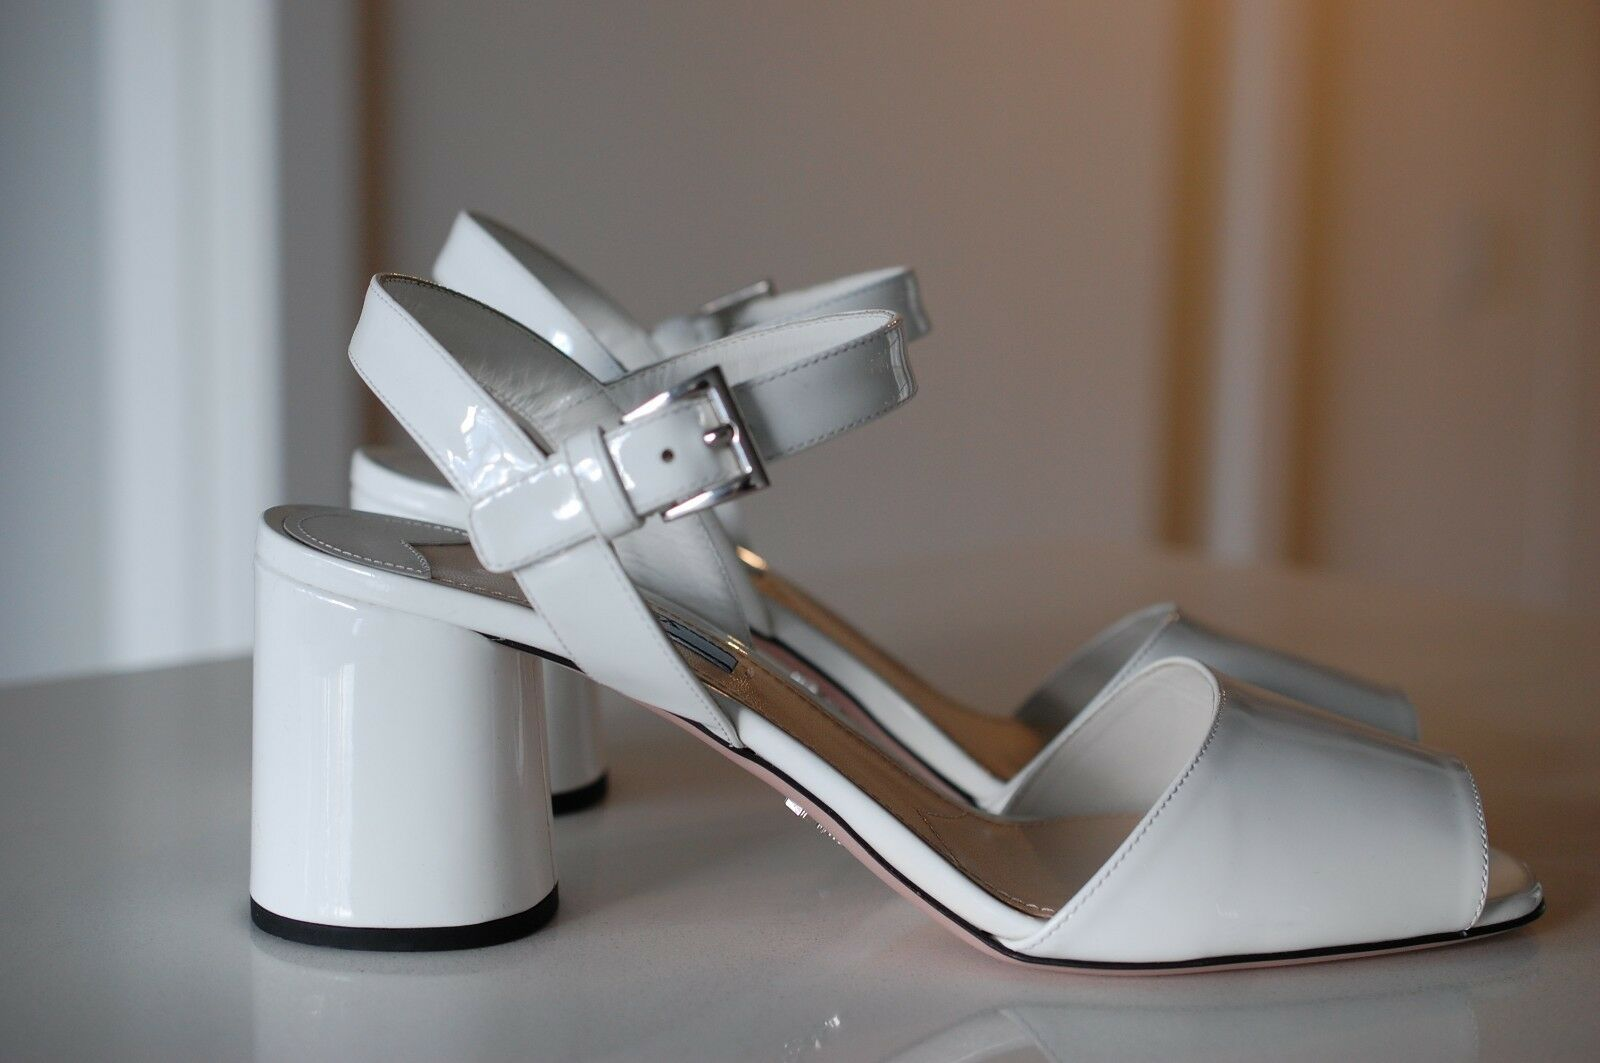 PRADA White Patent Leather Round Heel Ankle-Strap Sandal Pump shoes 9 US 40